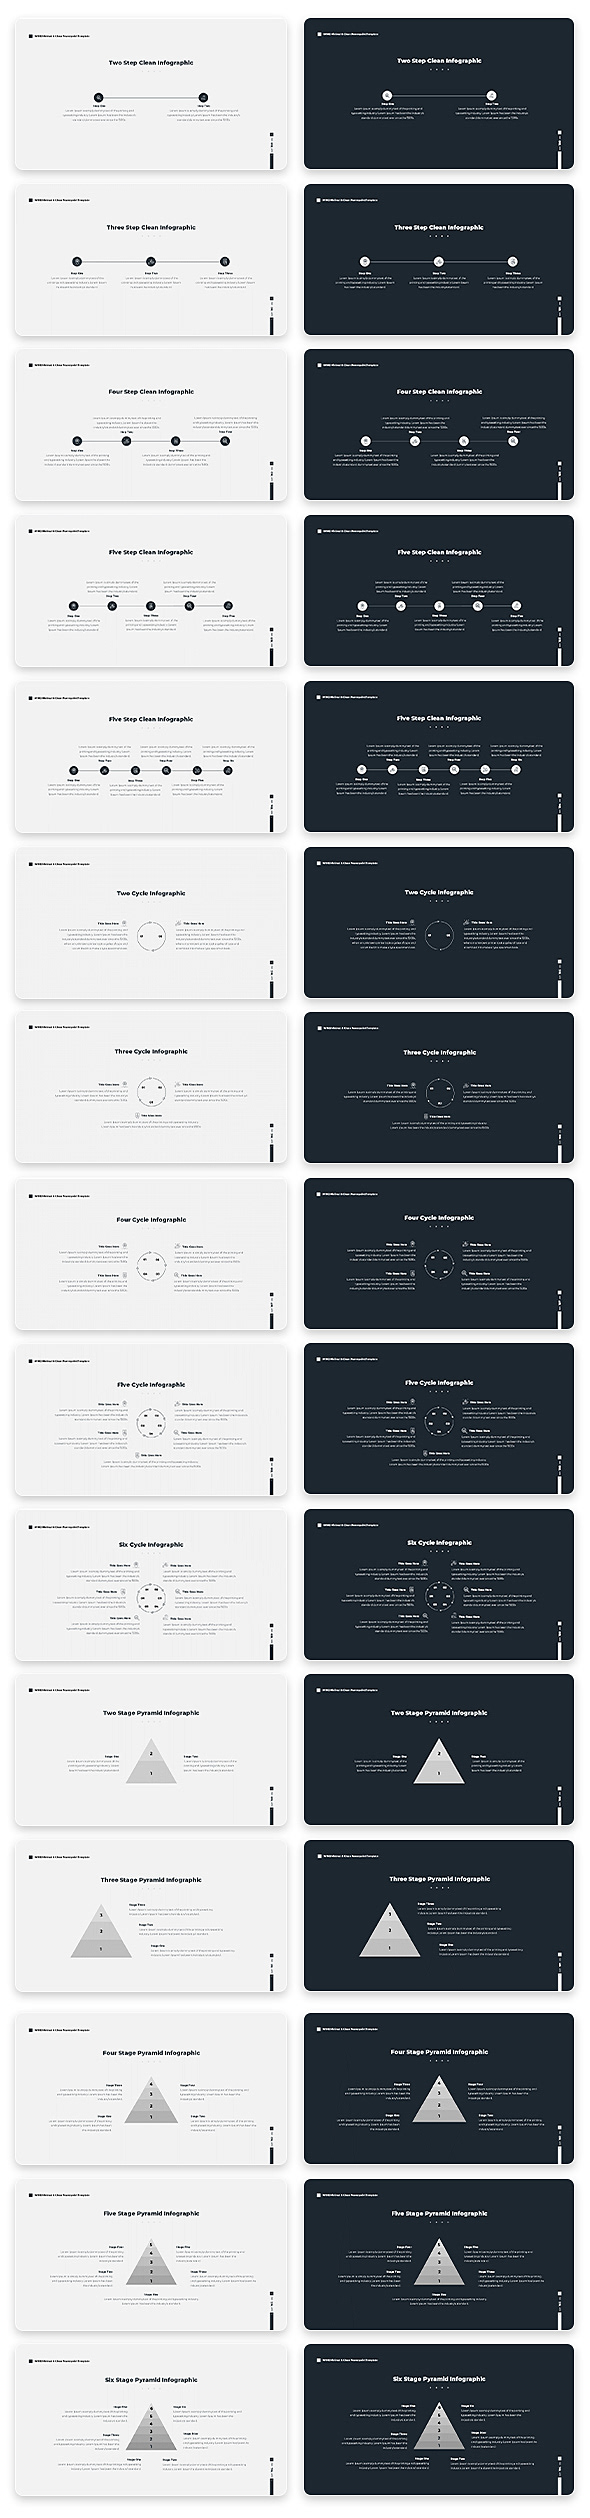 Wind Minimal & Clean Powerpoint With Text Animation Pack - 13